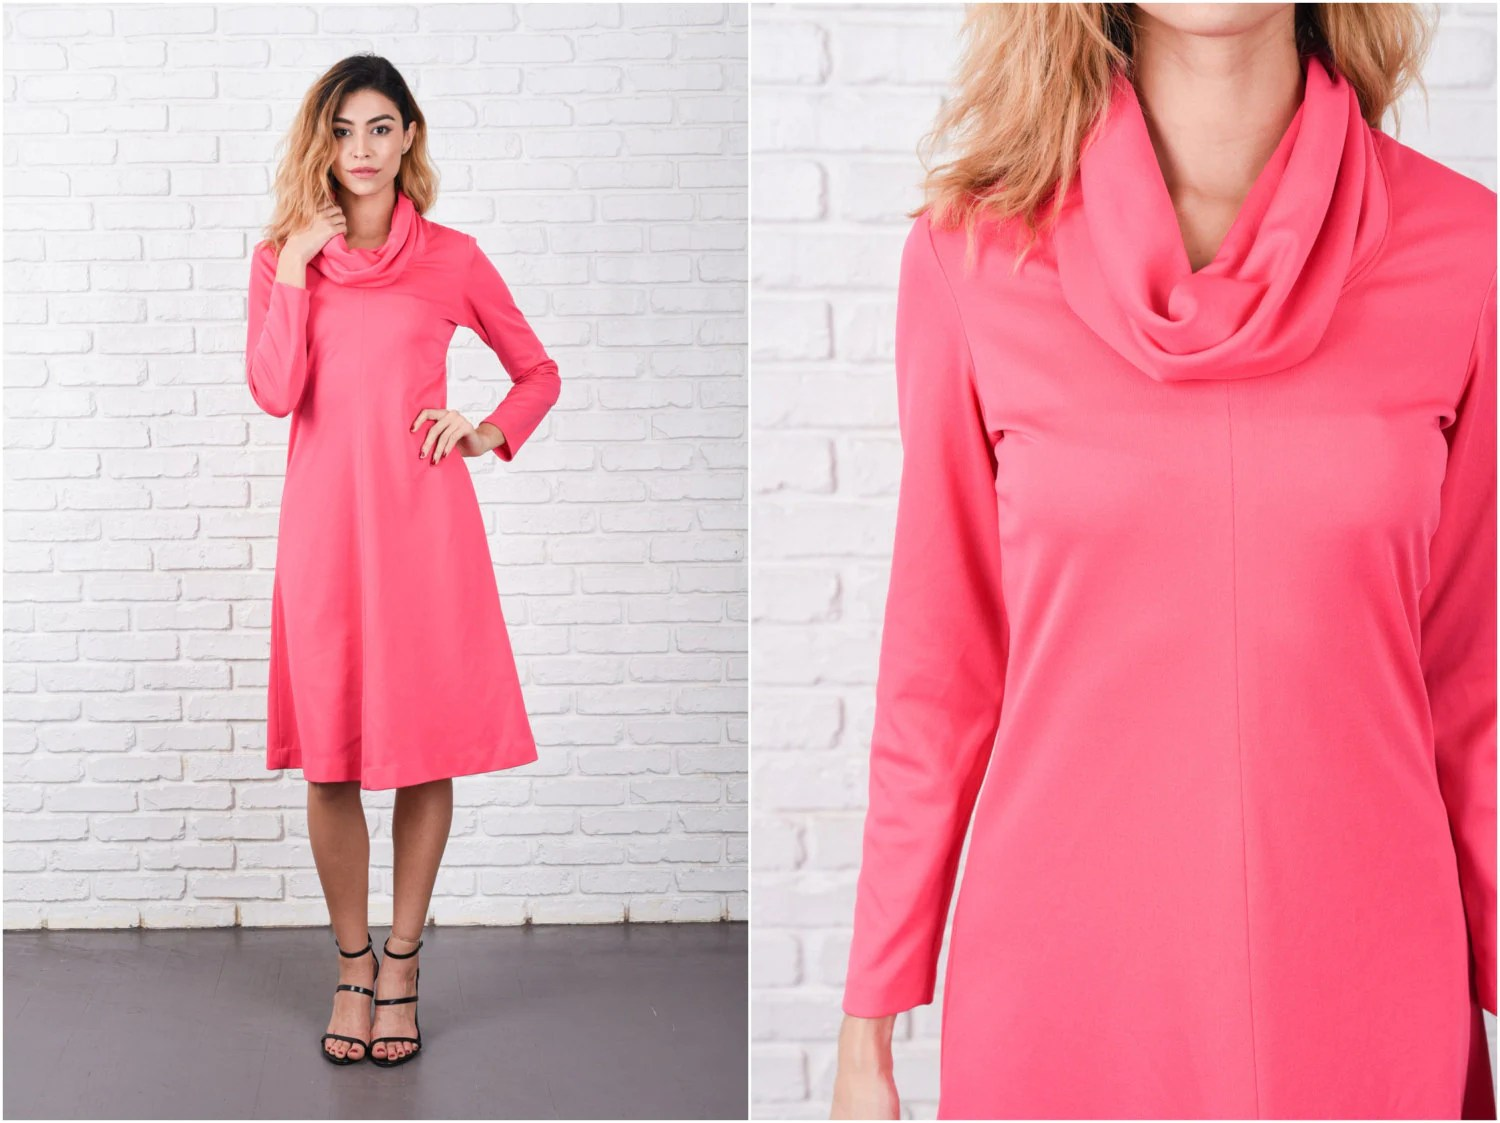 Pink Mod Dress Vintage 70s Cowl Draped Neckline A Line